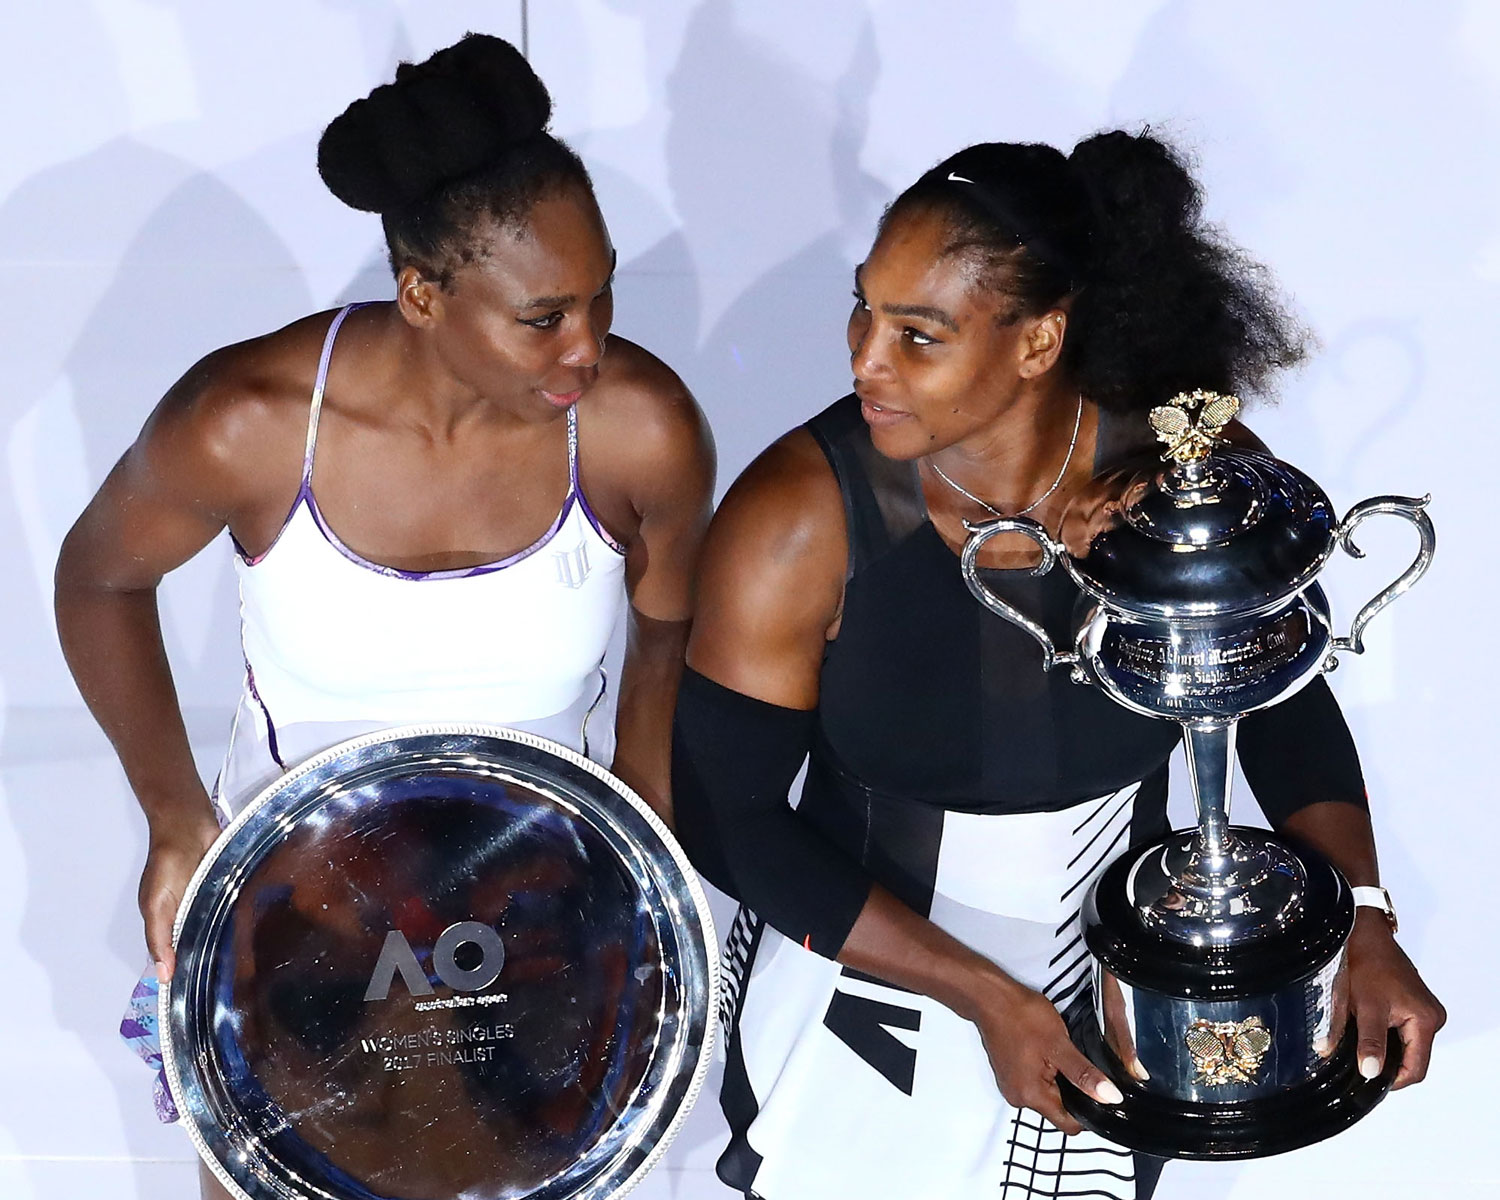 venus and serena williams Serena williams and venus williams, australian open 2009 williams has played older sister venus in 29 professional matches since 1998 overall, serena is 17–12.